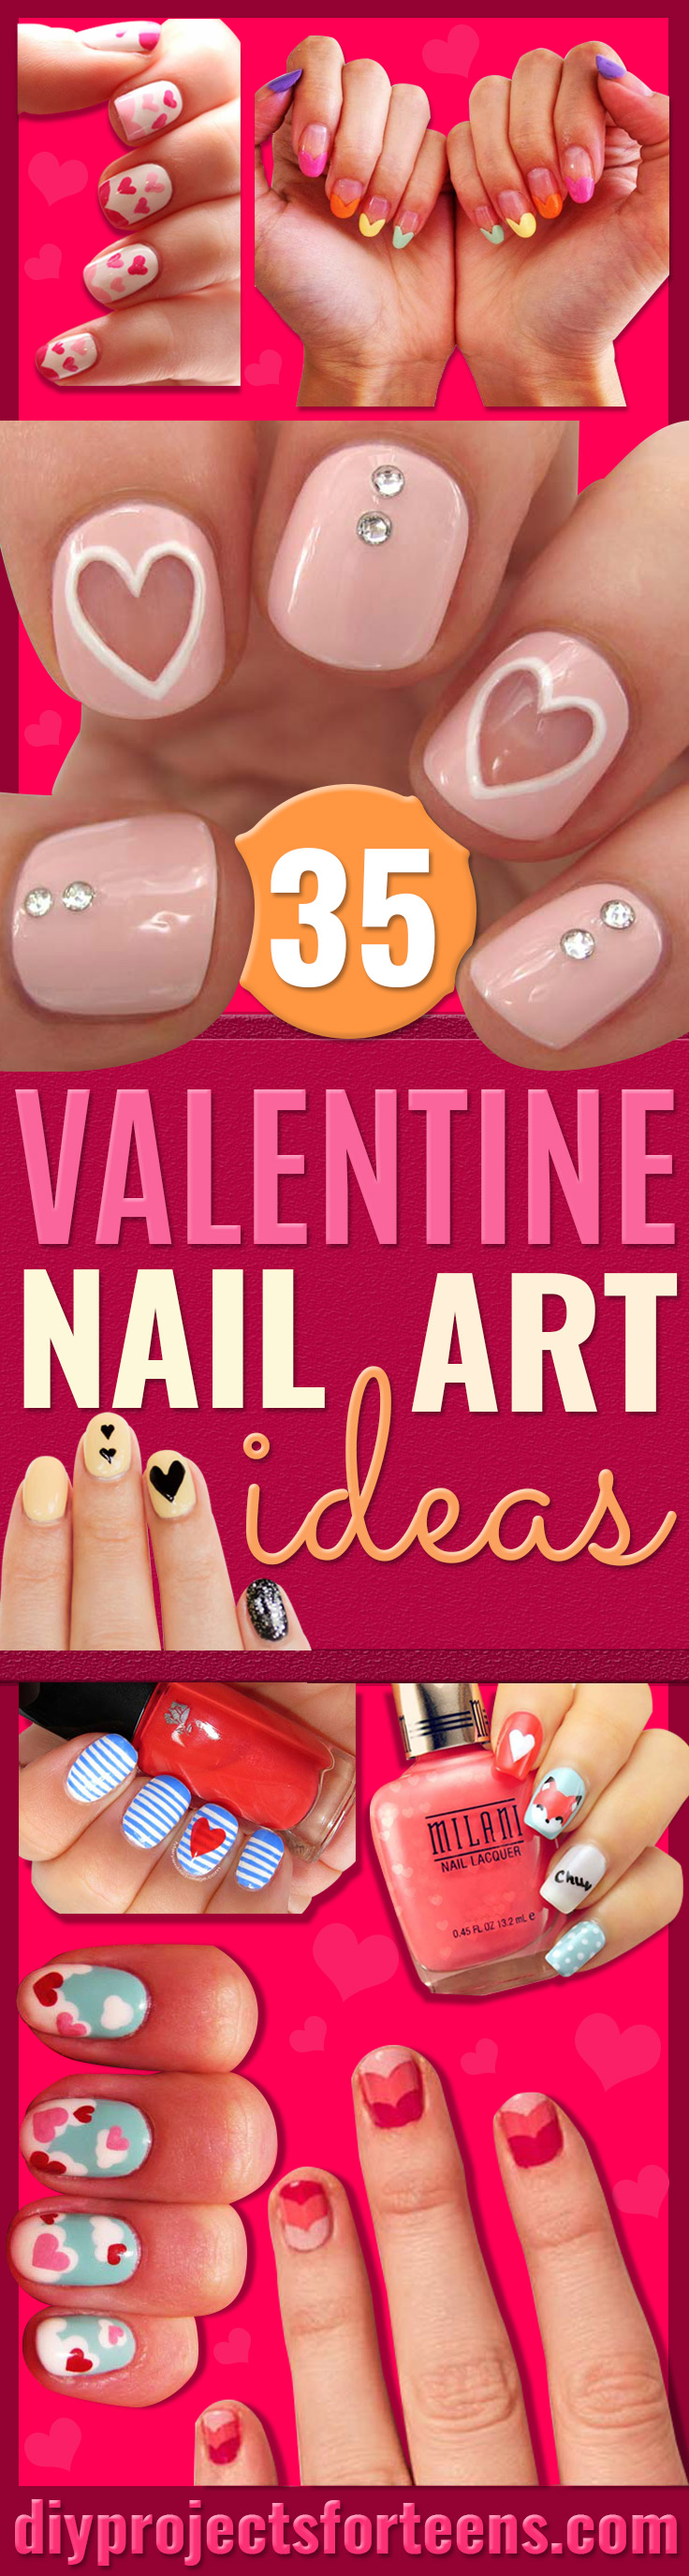 Valentine Nail Art Ideas Cute and Cool Looks For Valentines Day Nails - Hearts, Gradients, Red, Black and Pink Designs - Easy Ideas for DIY Manicures with Step by Step Tutorials - Fun Ideas for Teens, Teenagers and Women